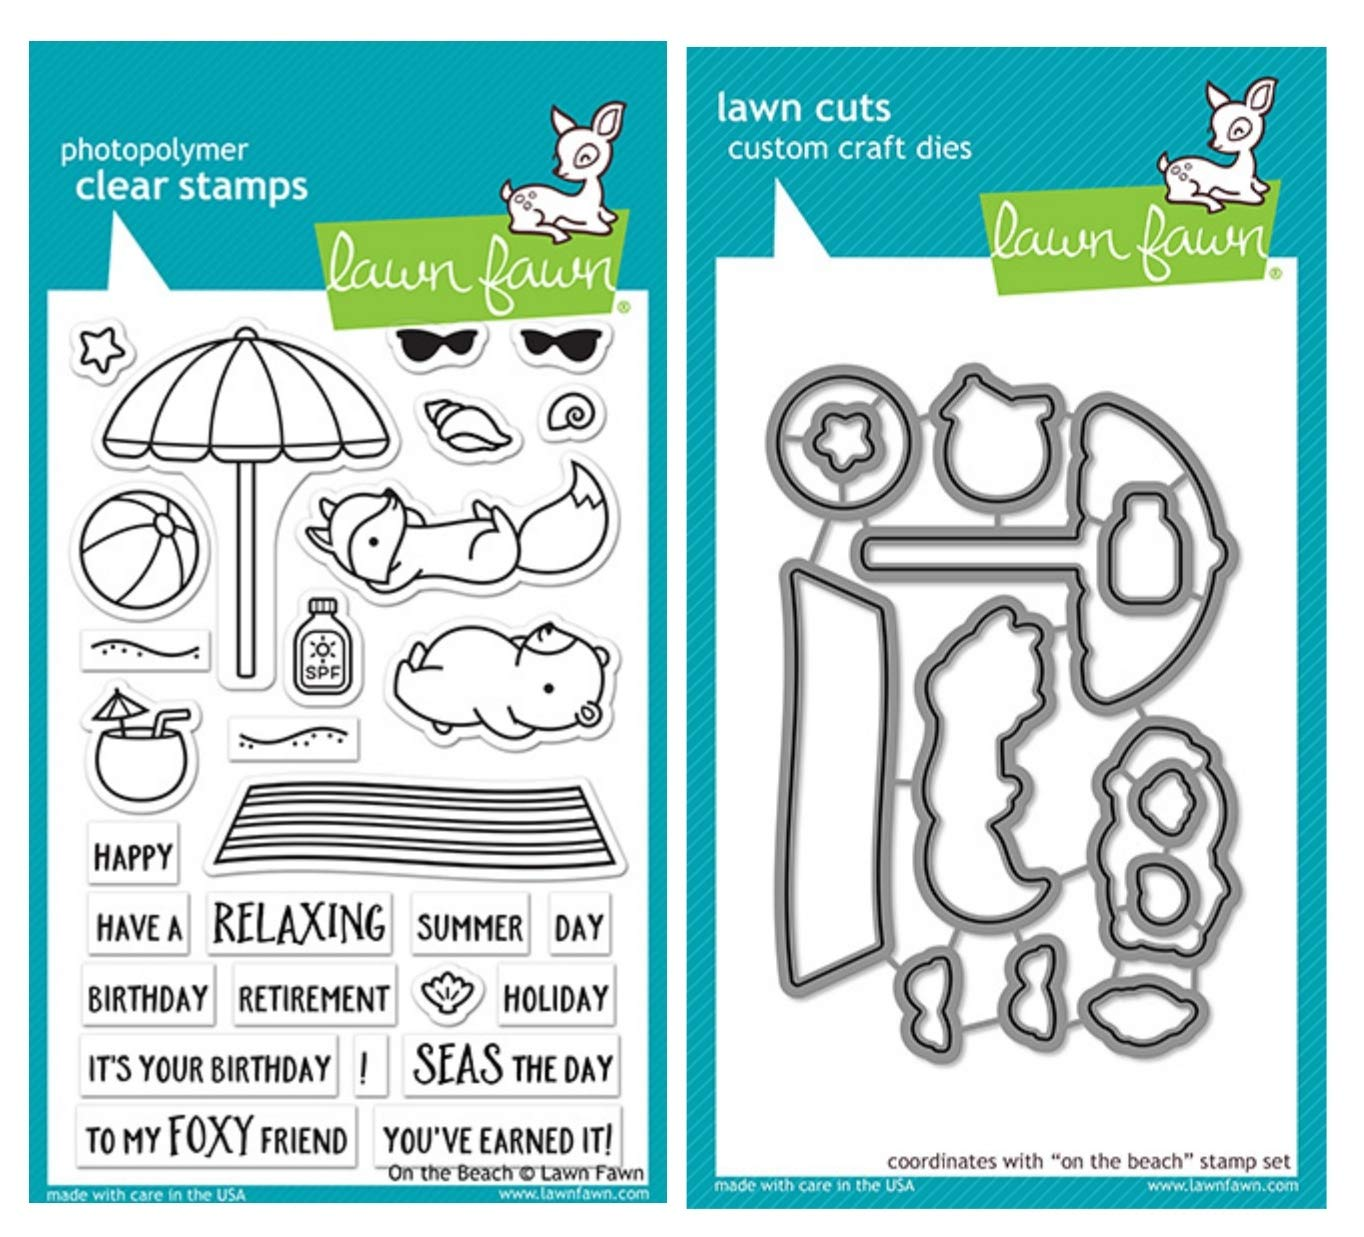 Lawn Fawn On The Beach 4''x6'' Clear Stamp and Coordinating Custom Craft Die Set, Bundle of Two Items, LF 1955, LF1956